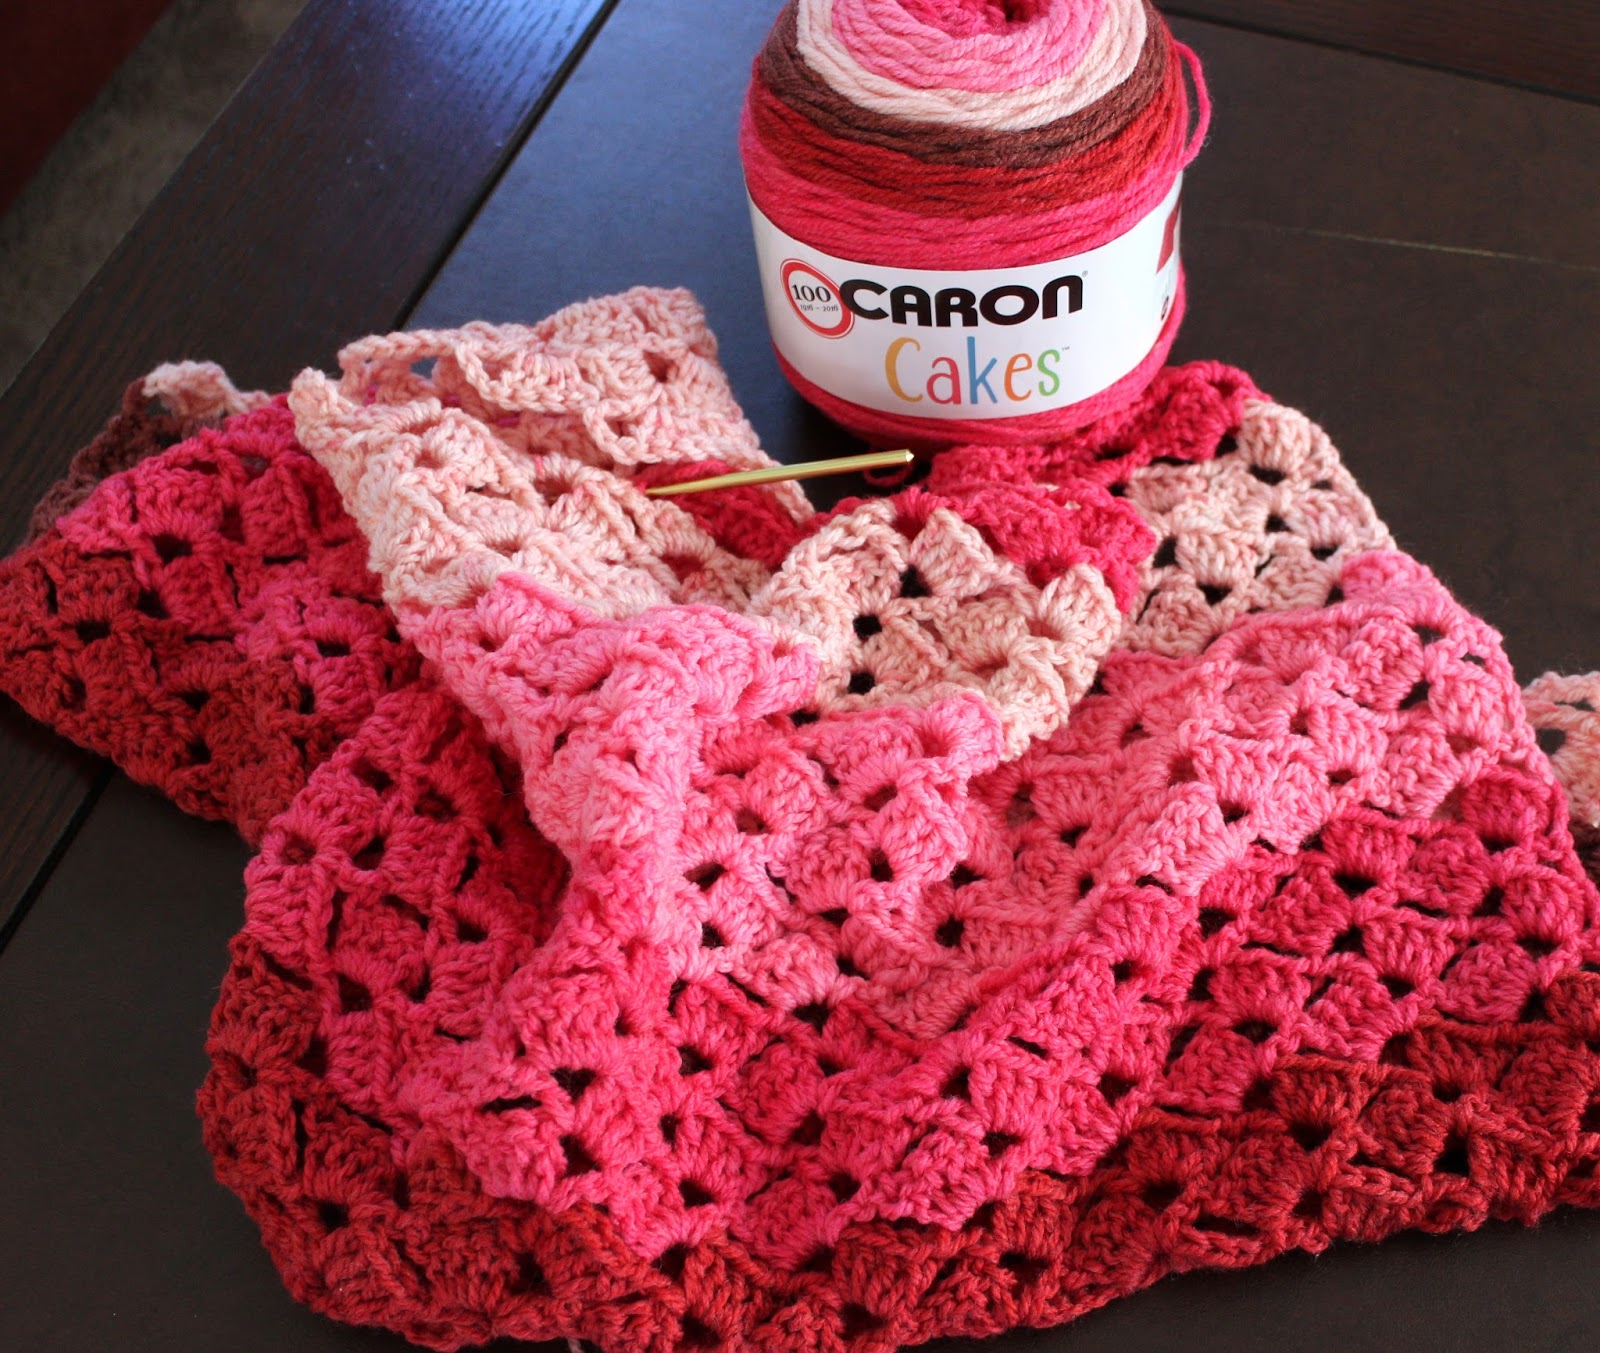 Crochet Patterns Using Sweet Roll Yarn : Lacy Crochet: My First Caron Cakes in Cherry Chip. Yarn Review